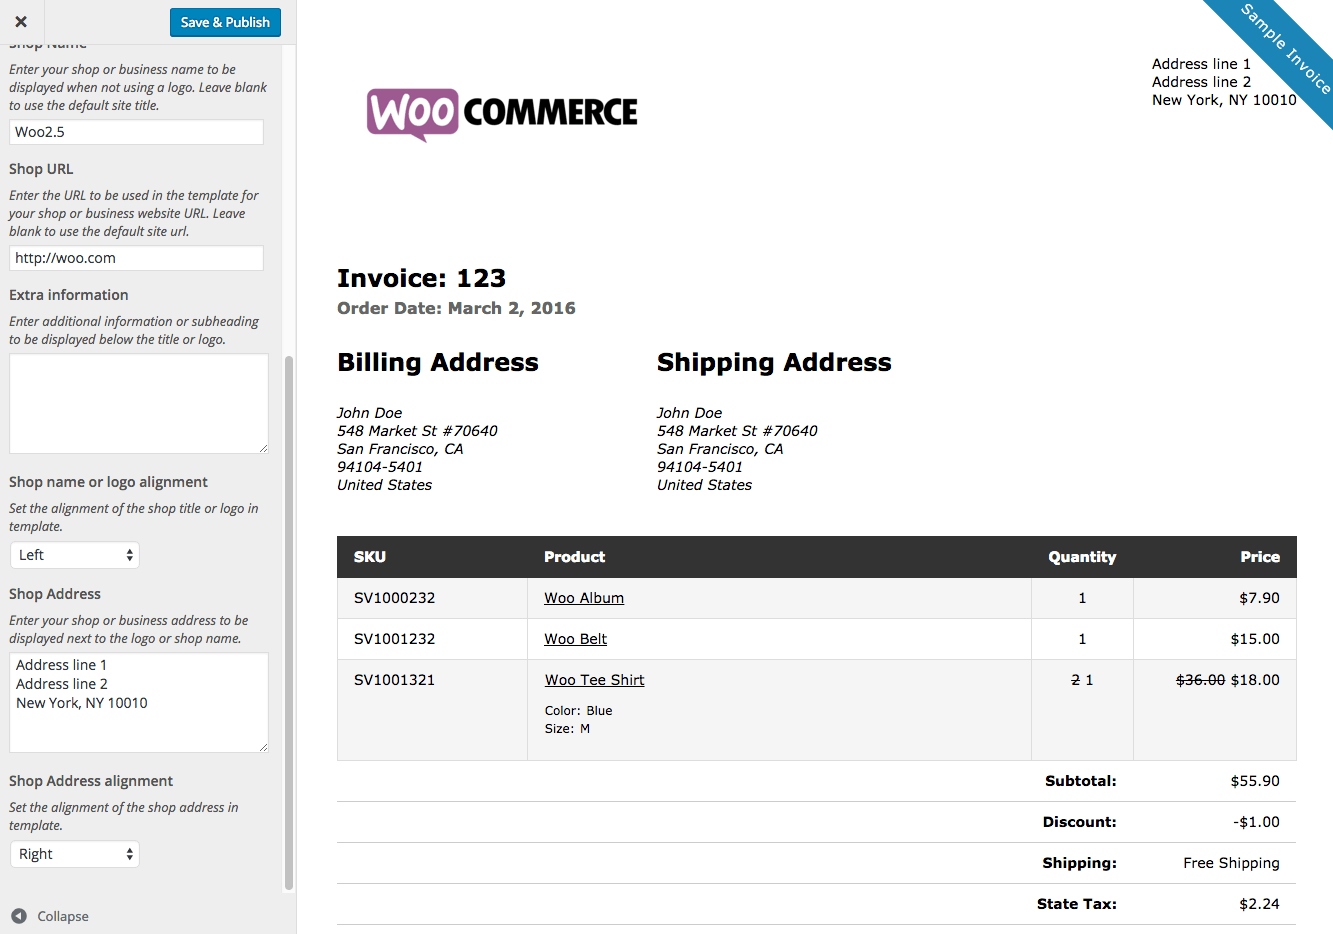 Usdgus  Surprising Print Invoices Amp Packing Lists  Woocommerce With Fetching Woocommerce Print Invoices  Packing Lists Customizer With Endearing Sephora No Receipt Return Policy Also Printable Receipts For Payment In Addition Daycare Receipts And New Mexico Gross Receipts As Well As Travel Receipt Organizer Additionally Beef Stew Receipt From Woocommercecom With Usdgus  Fetching Print Invoices Amp Packing Lists  Woocommerce With Endearing Woocommerce Print Invoices  Packing Lists Customizer And Surprising Sephora No Receipt Return Policy Also Printable Receipts For Payment In Addition Daycare Receipts From Woocommercecom